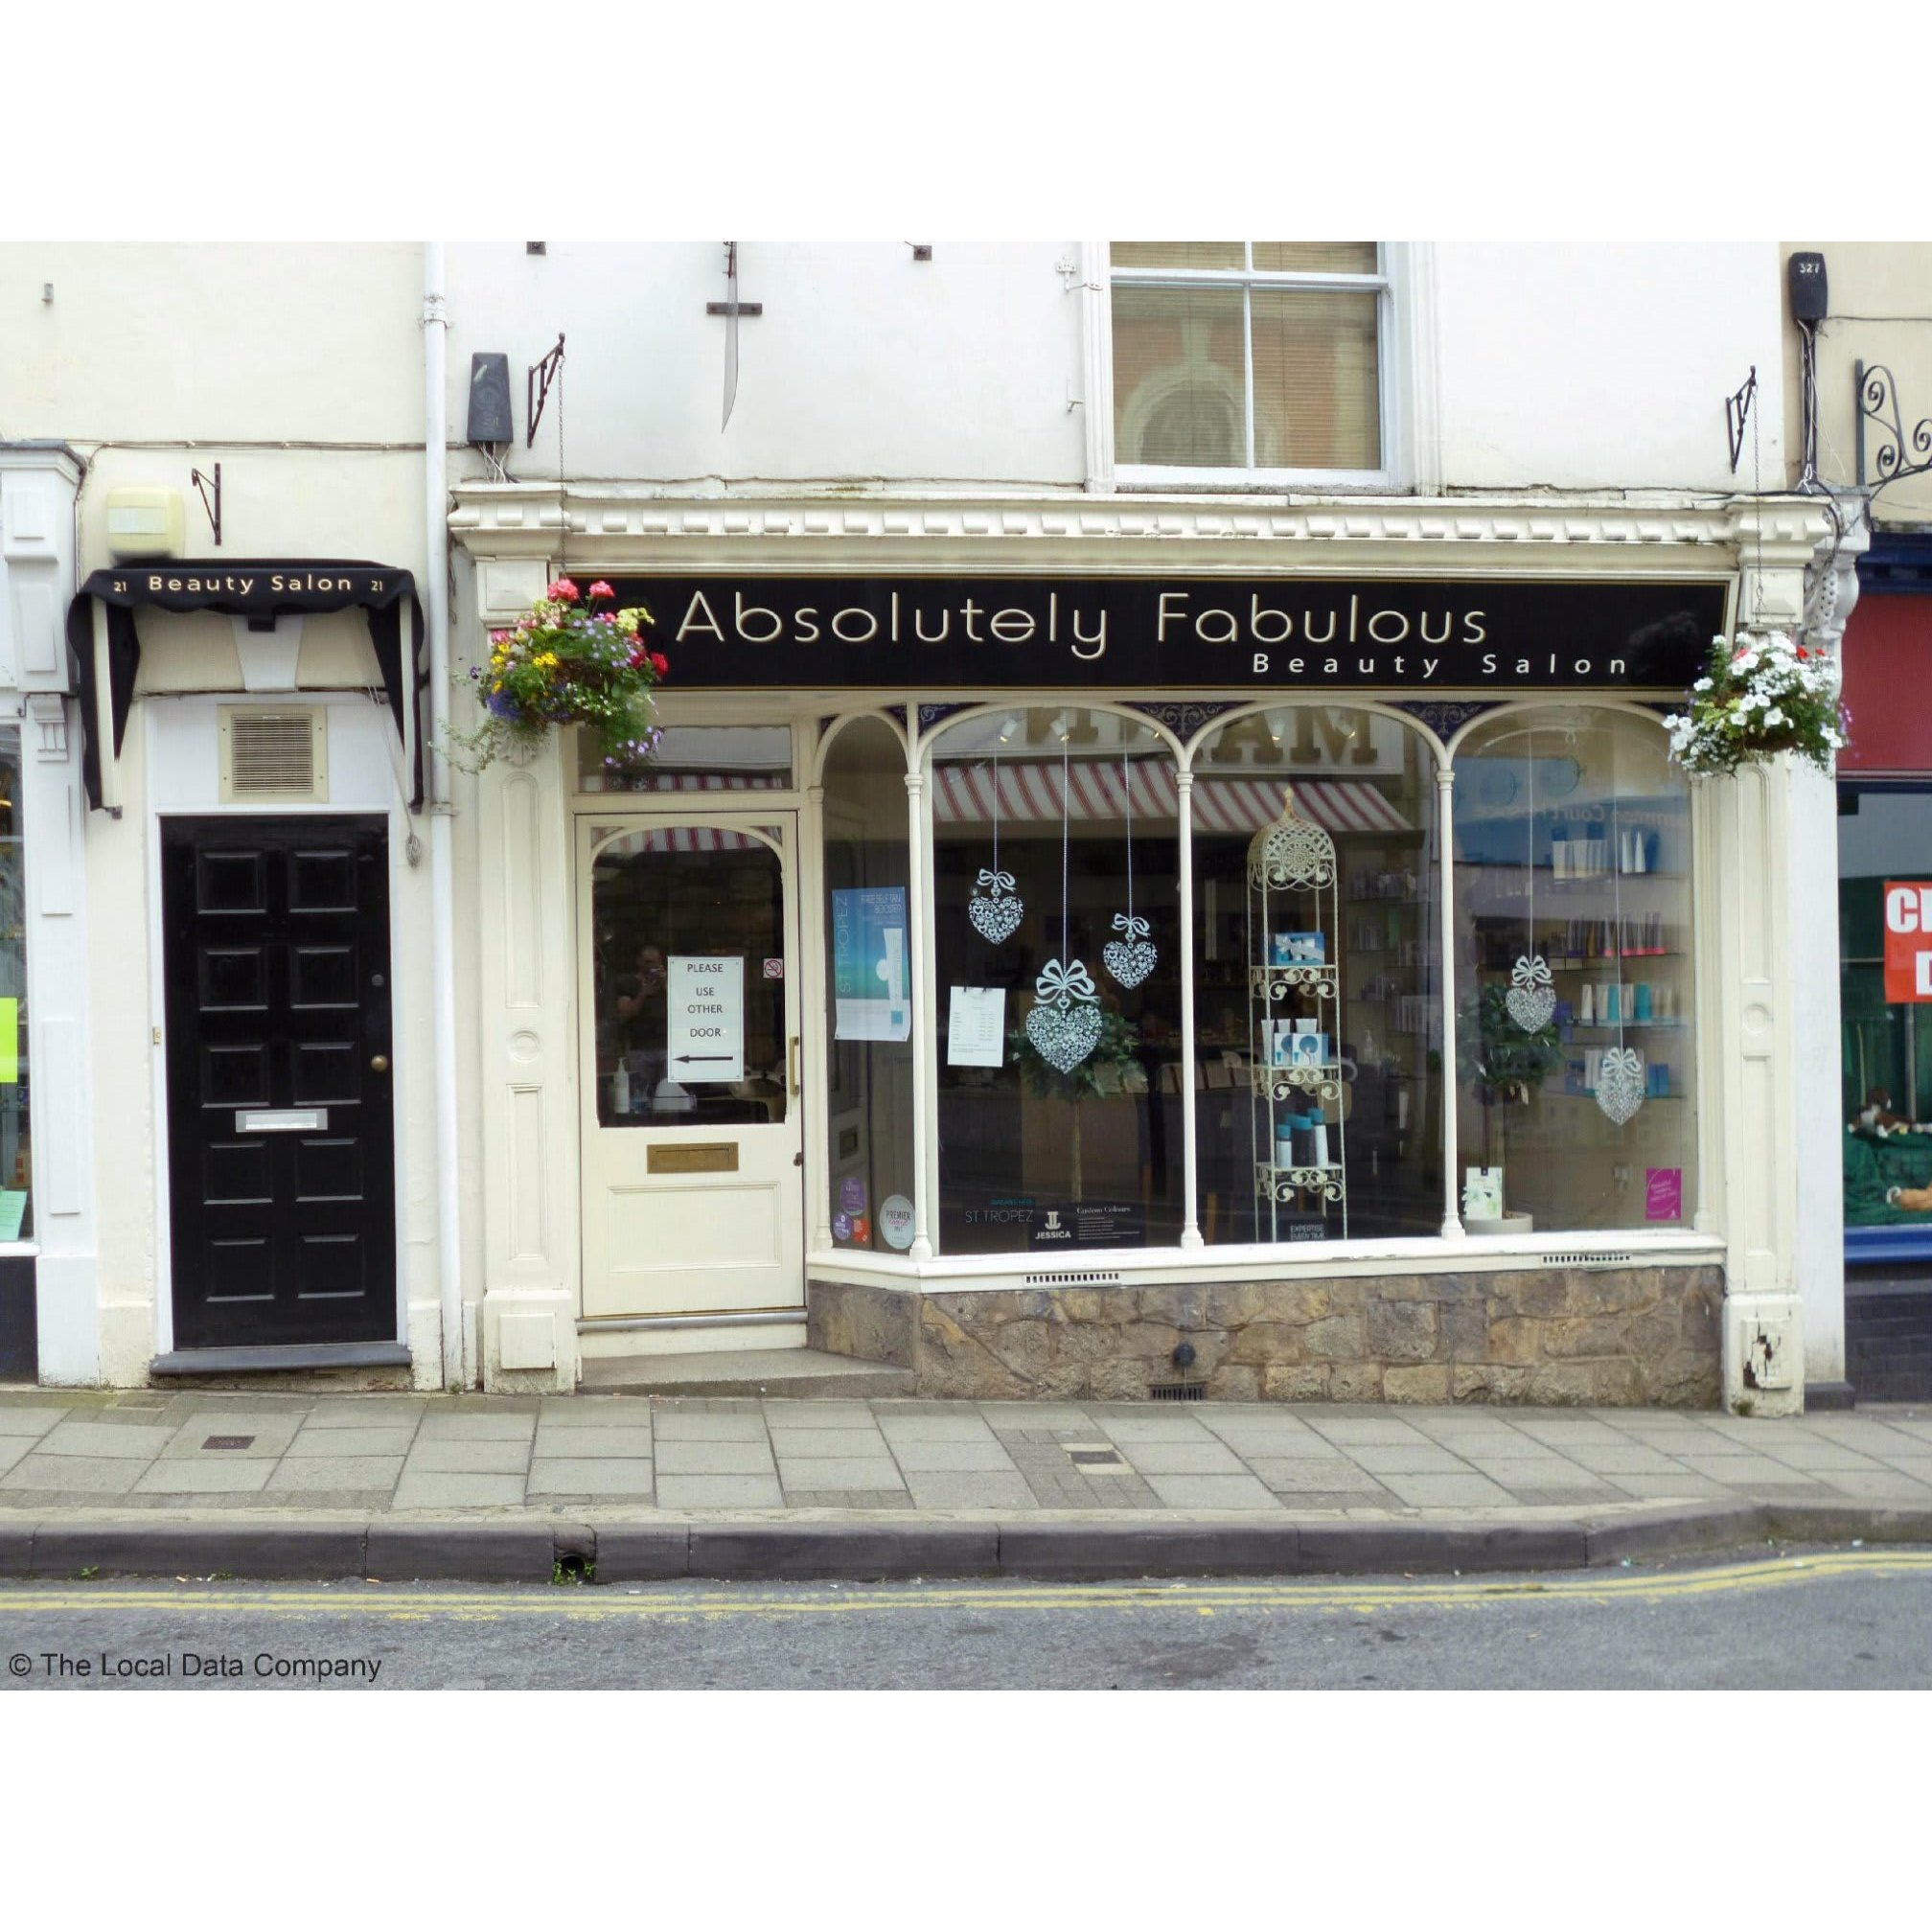 Absolutely fabulous stroud beauty salons my local for Absolutely fabulous salon